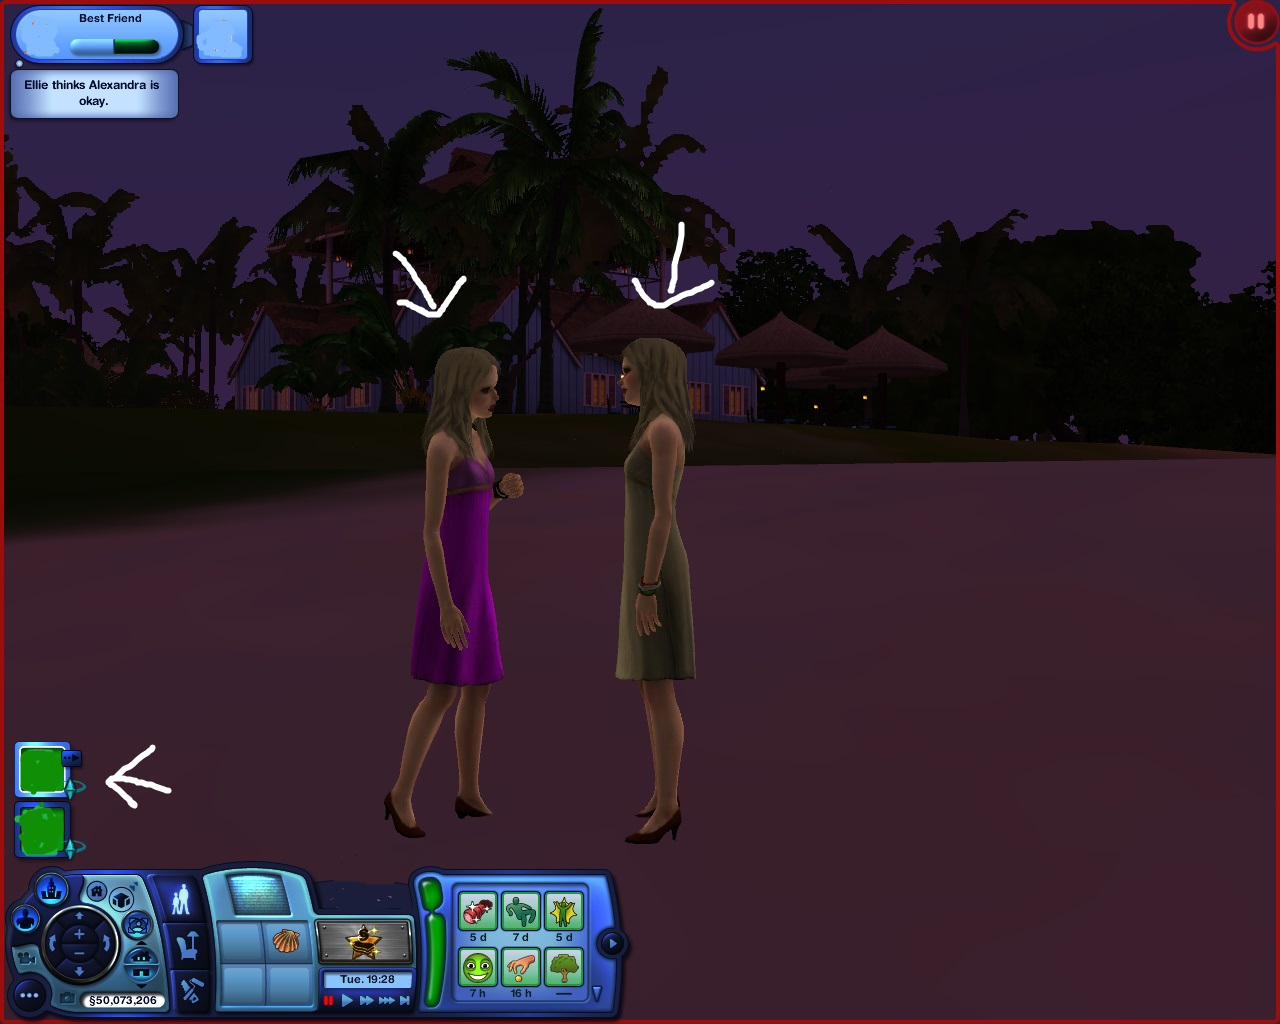 Sims 3 online dating photographer